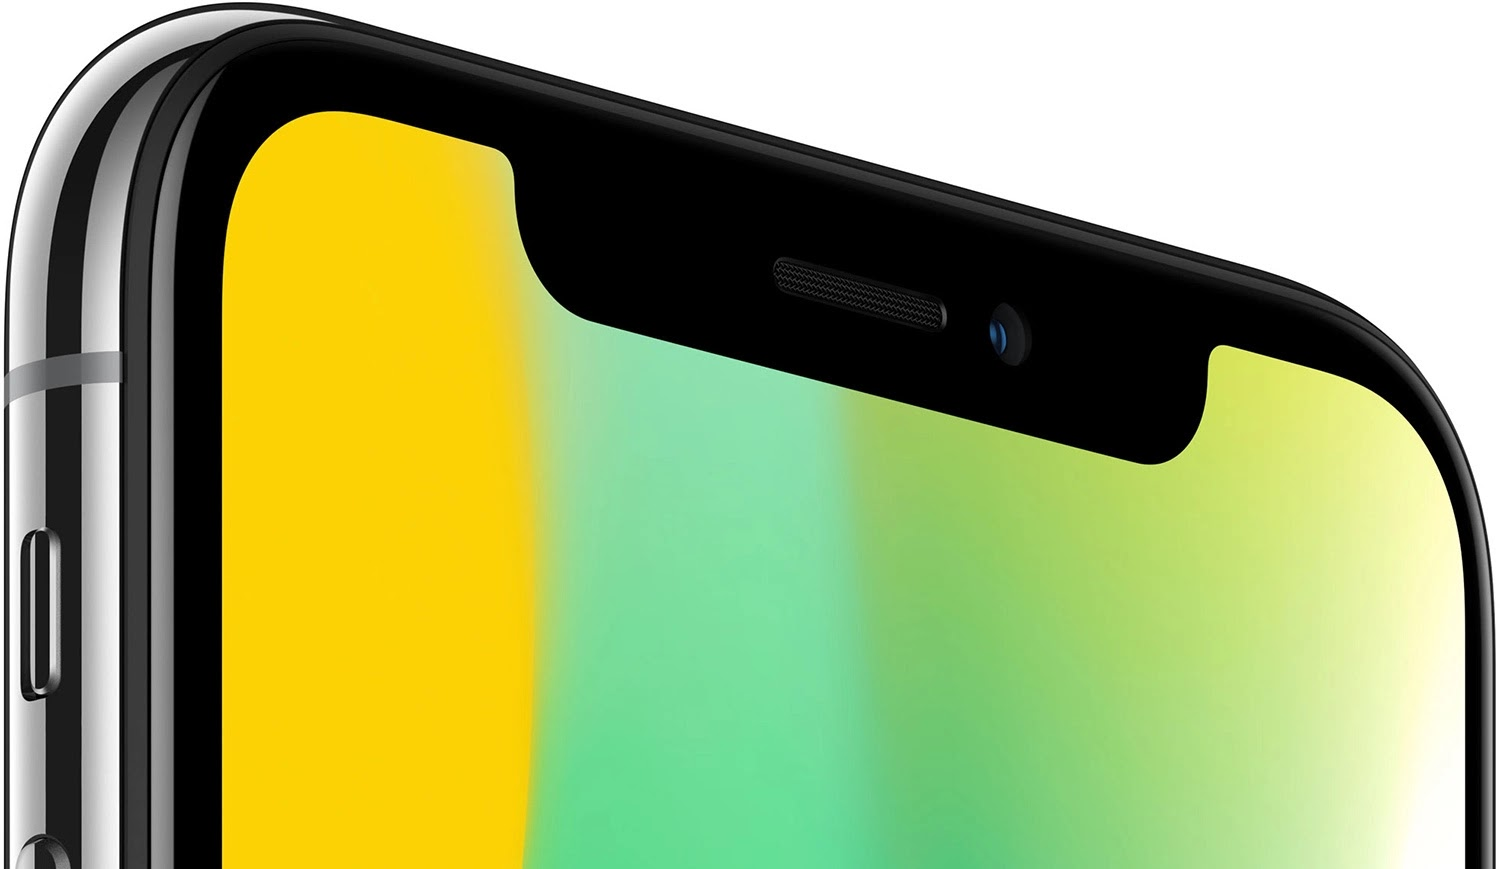 Android P notch display on smart phones